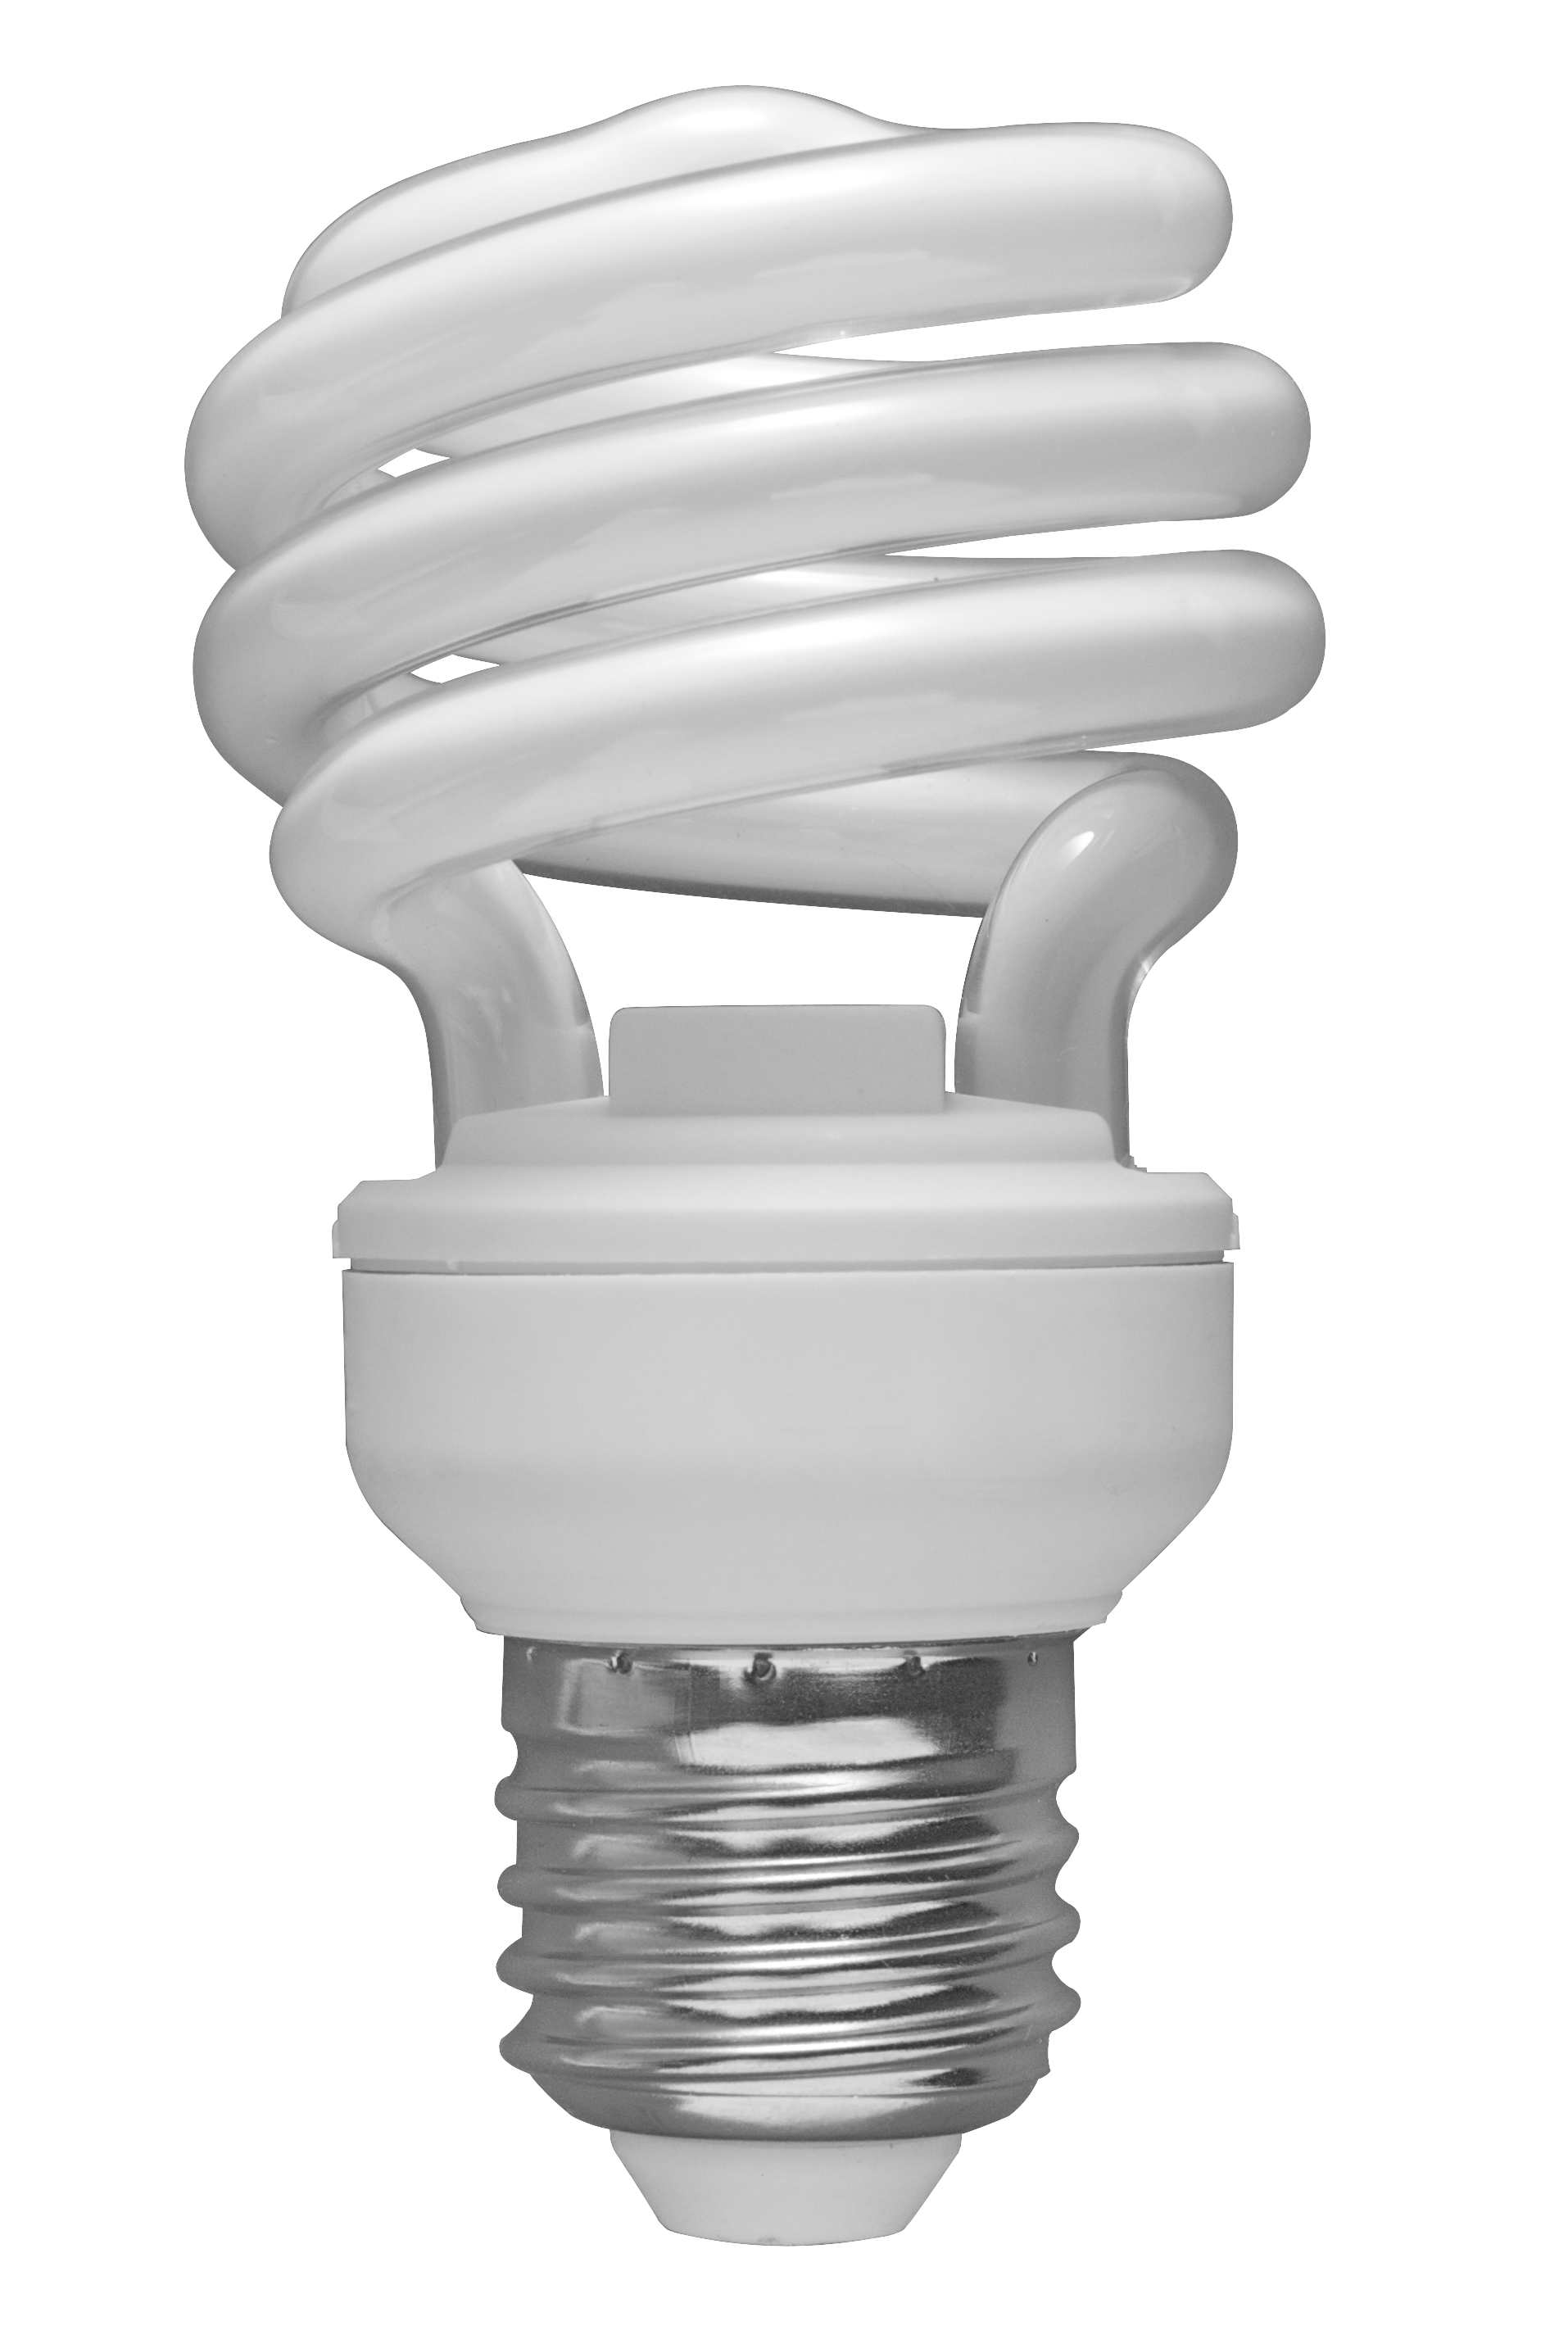 Radiation drawing light bulb. Use compact fluorescent bulbs